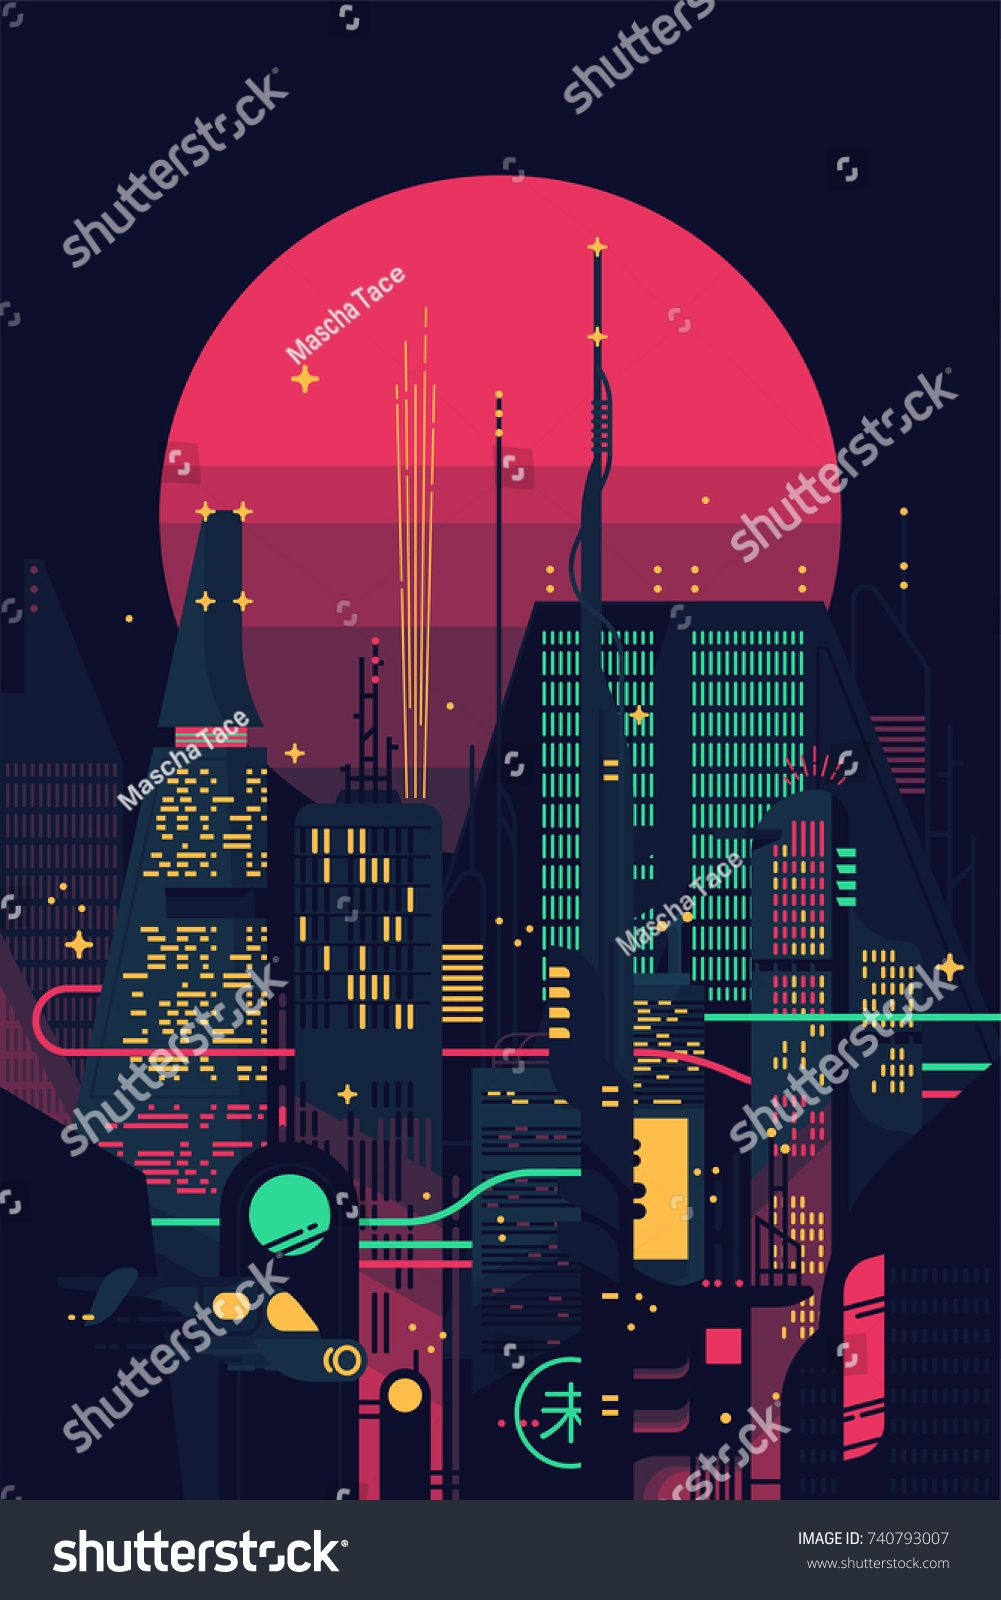 Cool retro futuristic synthwave background with night dystopian